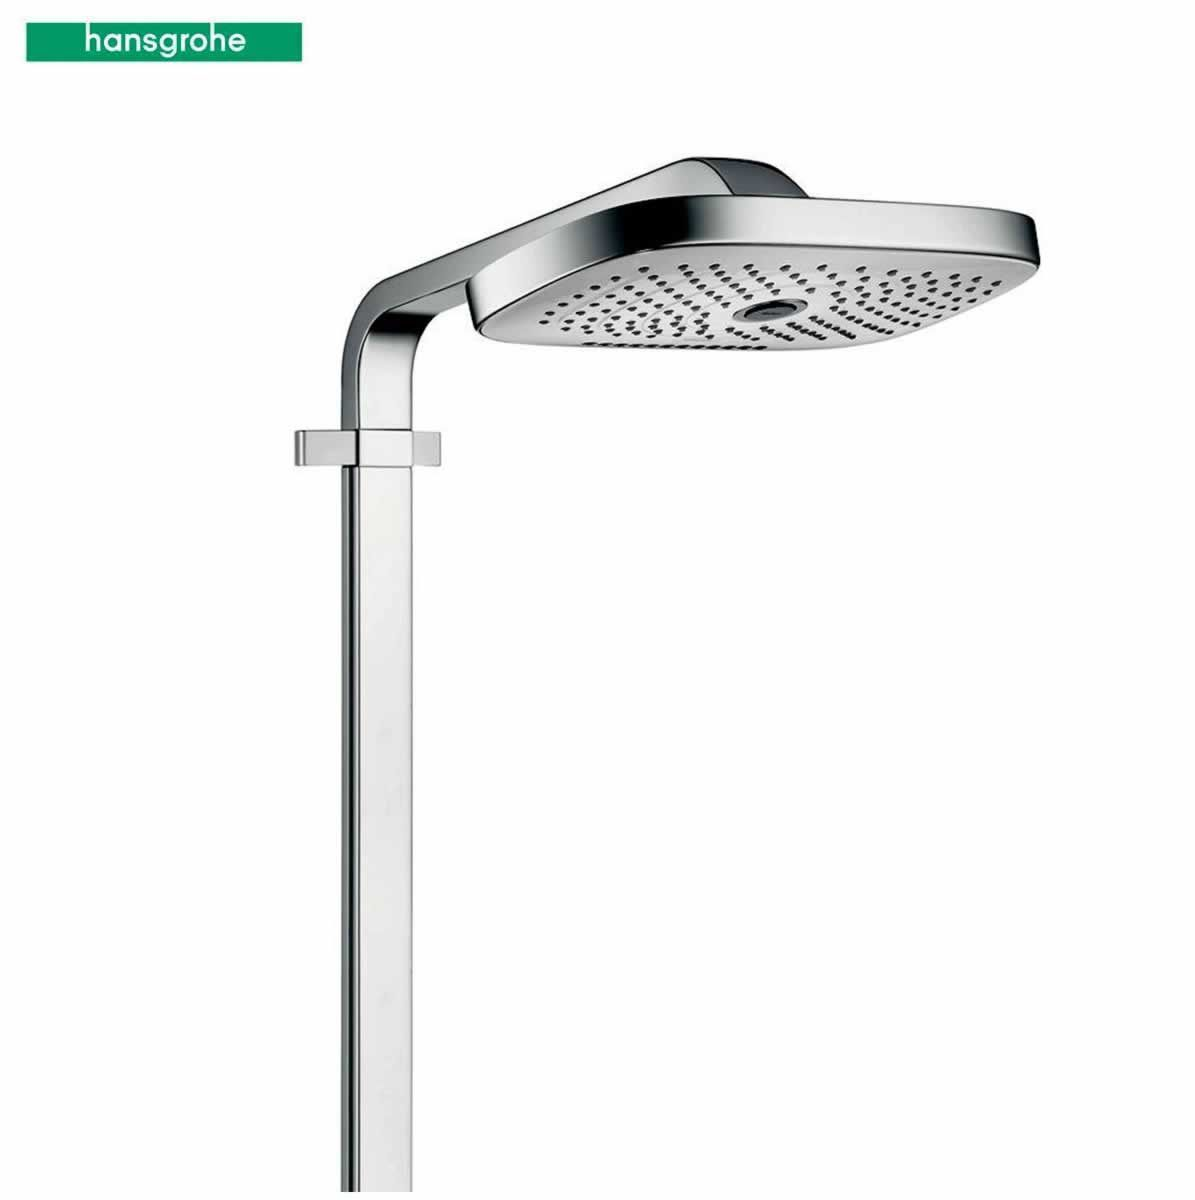 hansgrohe raindance select e 300 3 jet st showerpipe bathrooms direct yorkshire. Black Bedroom Furniture Sets. Home Design Ideas